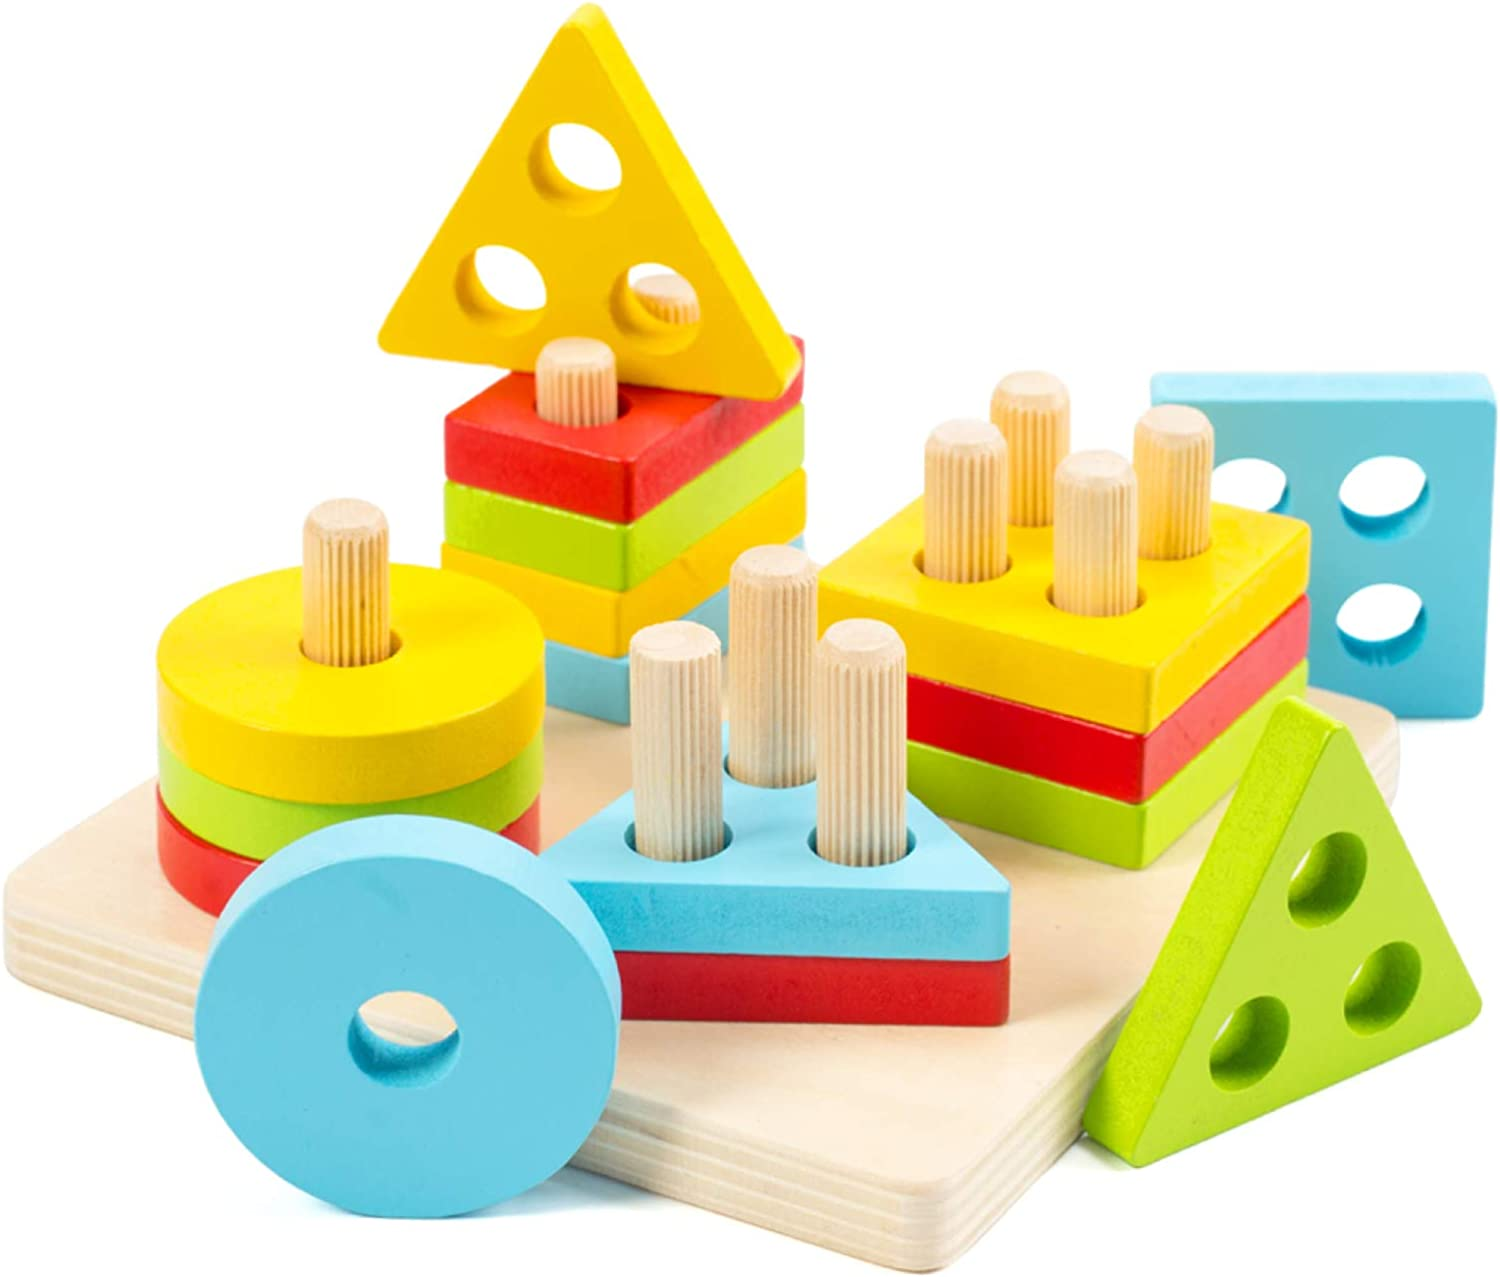 Eco-friendly Wooden pyramid Educational Toy Kids gift Wood baby toy Montessori toys Waldorf toys 28cm Wooden Stacking Toy 11/'/'